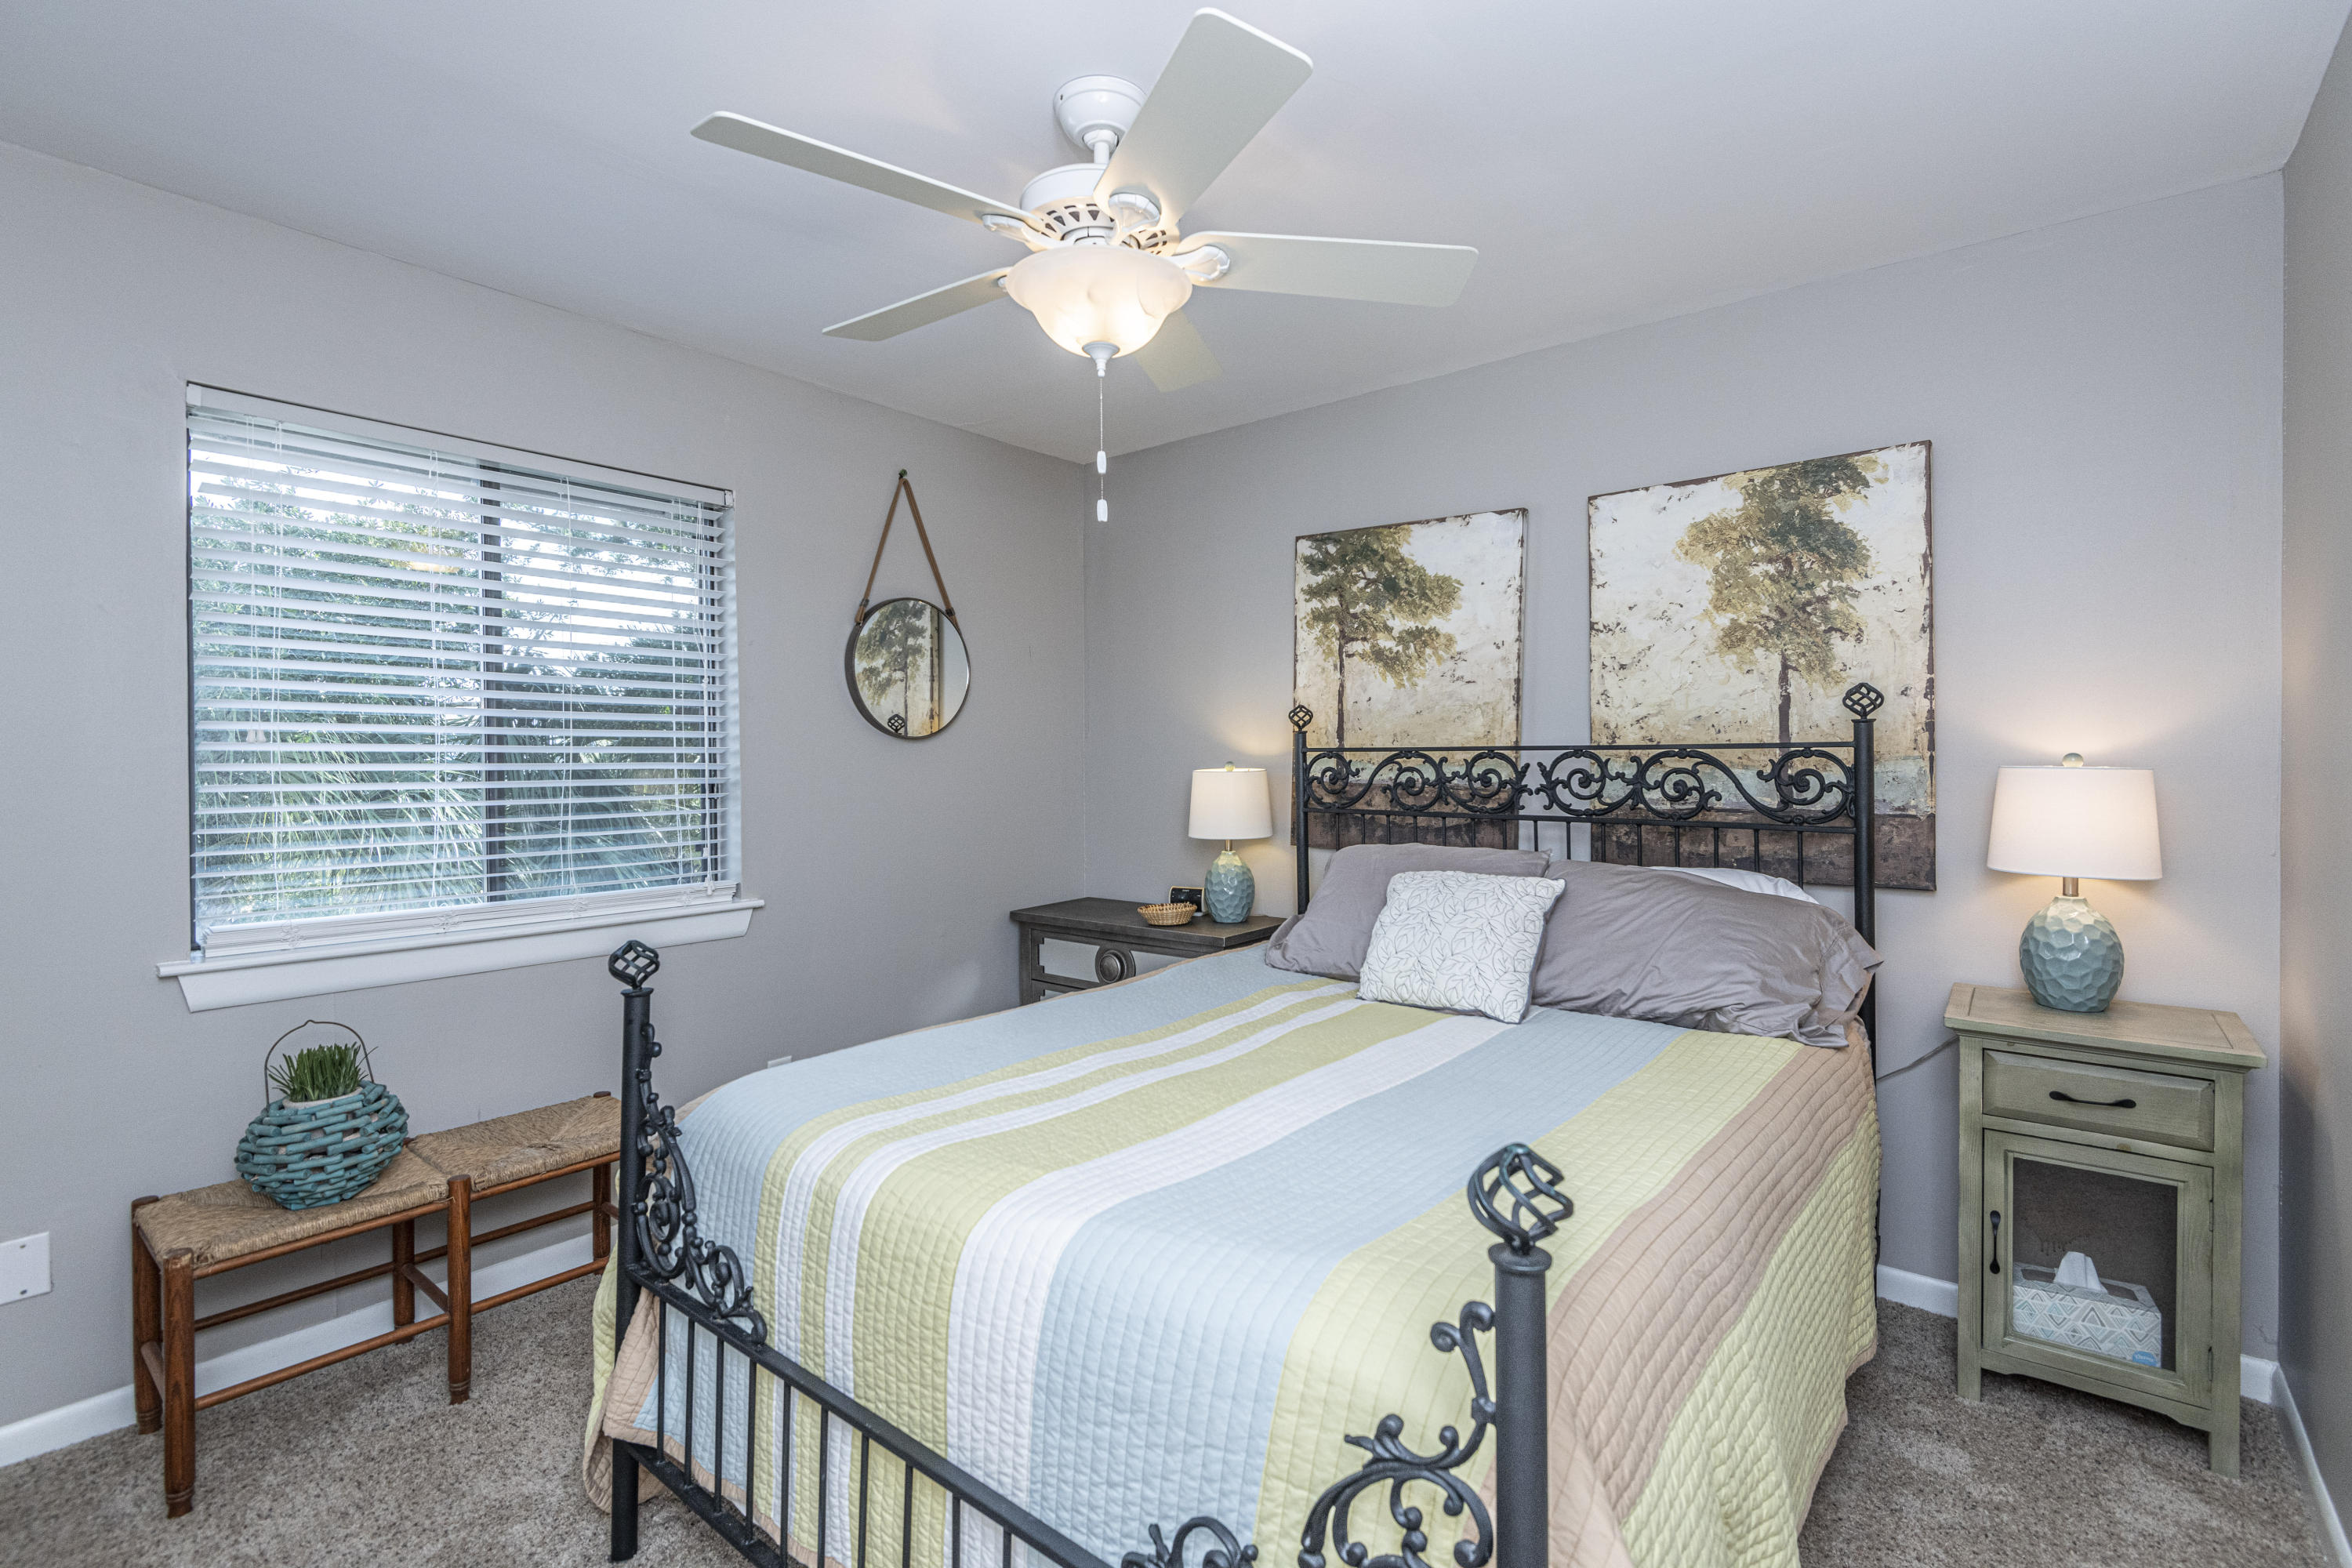 Mariners Cay Homes For Sale - 71 Mariners Cay, Folly Beach, SC - 35